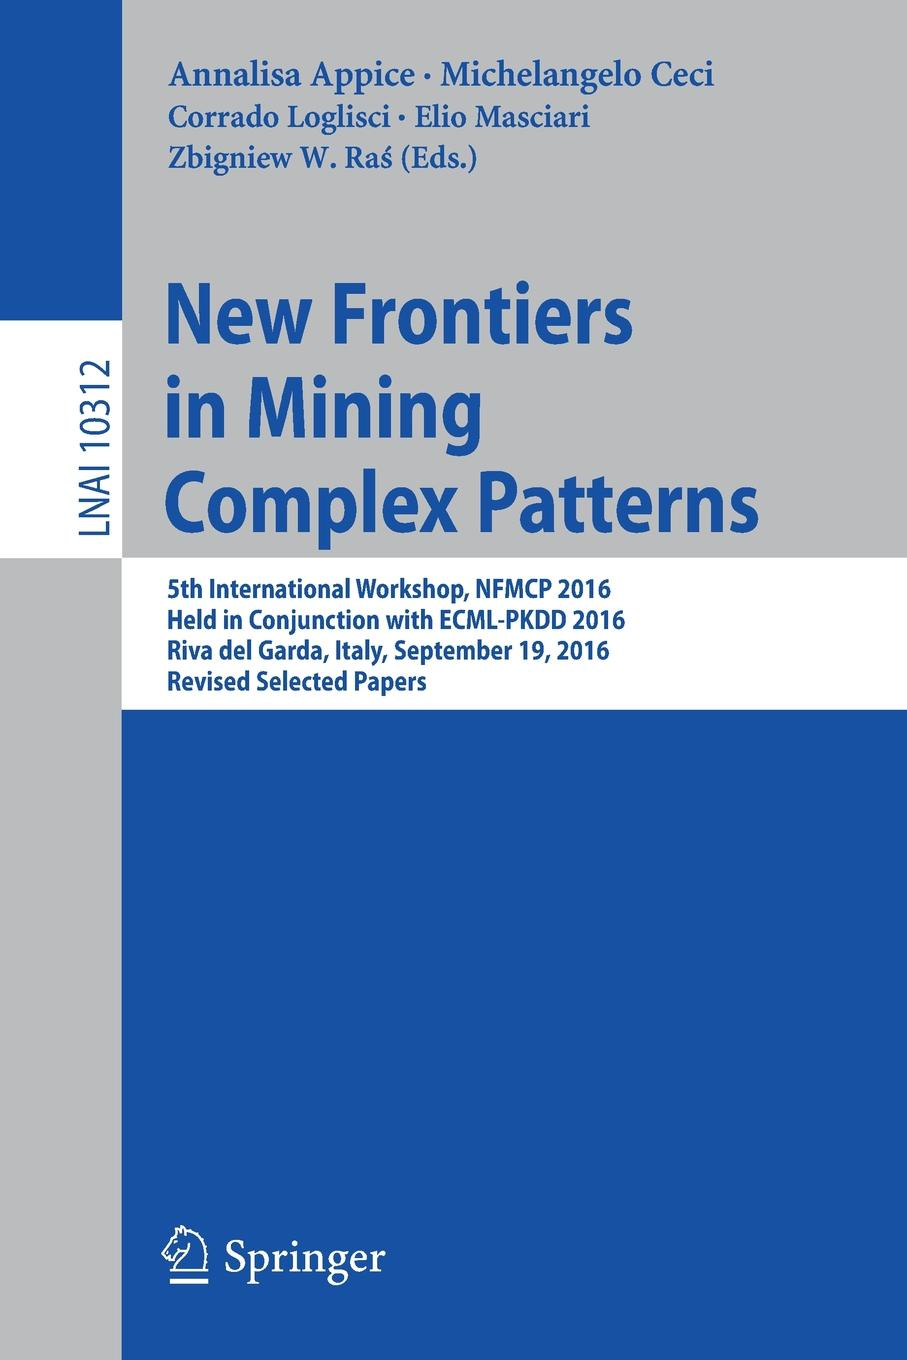 New Frontiers in Mining Complex Patterns. 5th International Workshop, NFMCP 2016, Held in Conjunction with ECML-PKDD 2016, Riva del Garda, Italy, September 19, 2016, Revised Selected Papers 2016 new